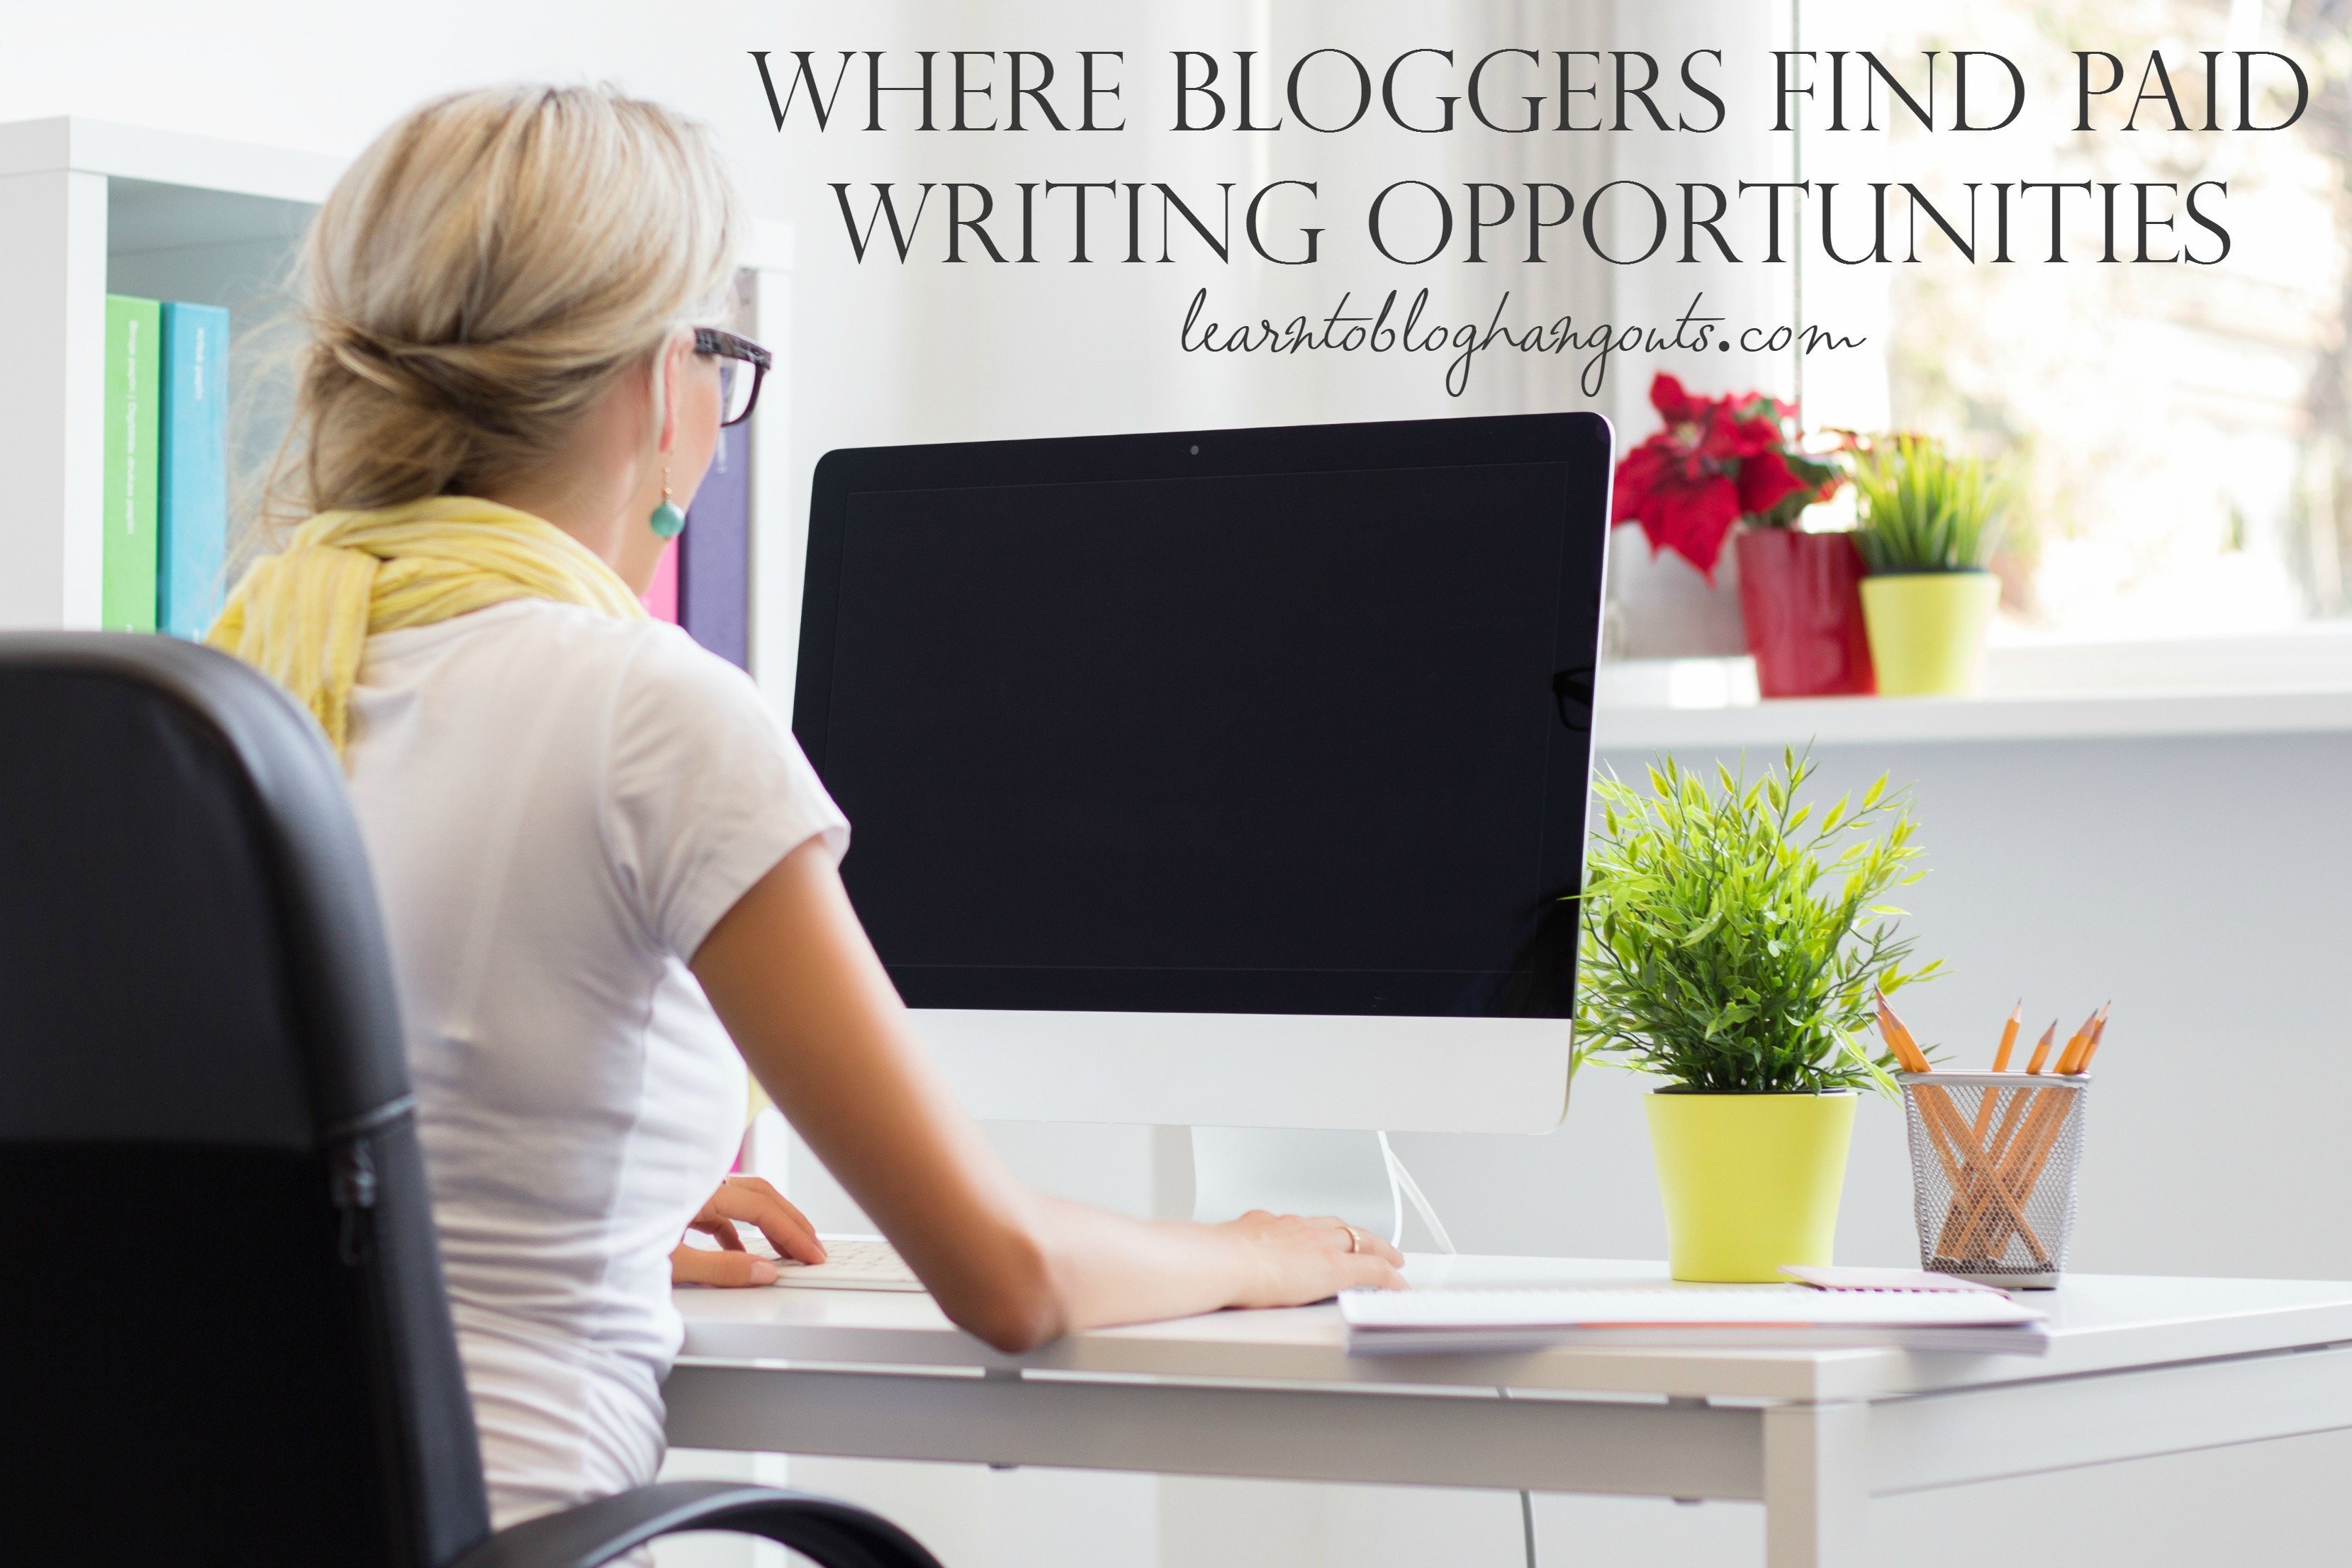 where bloggers find paid writing opportunities